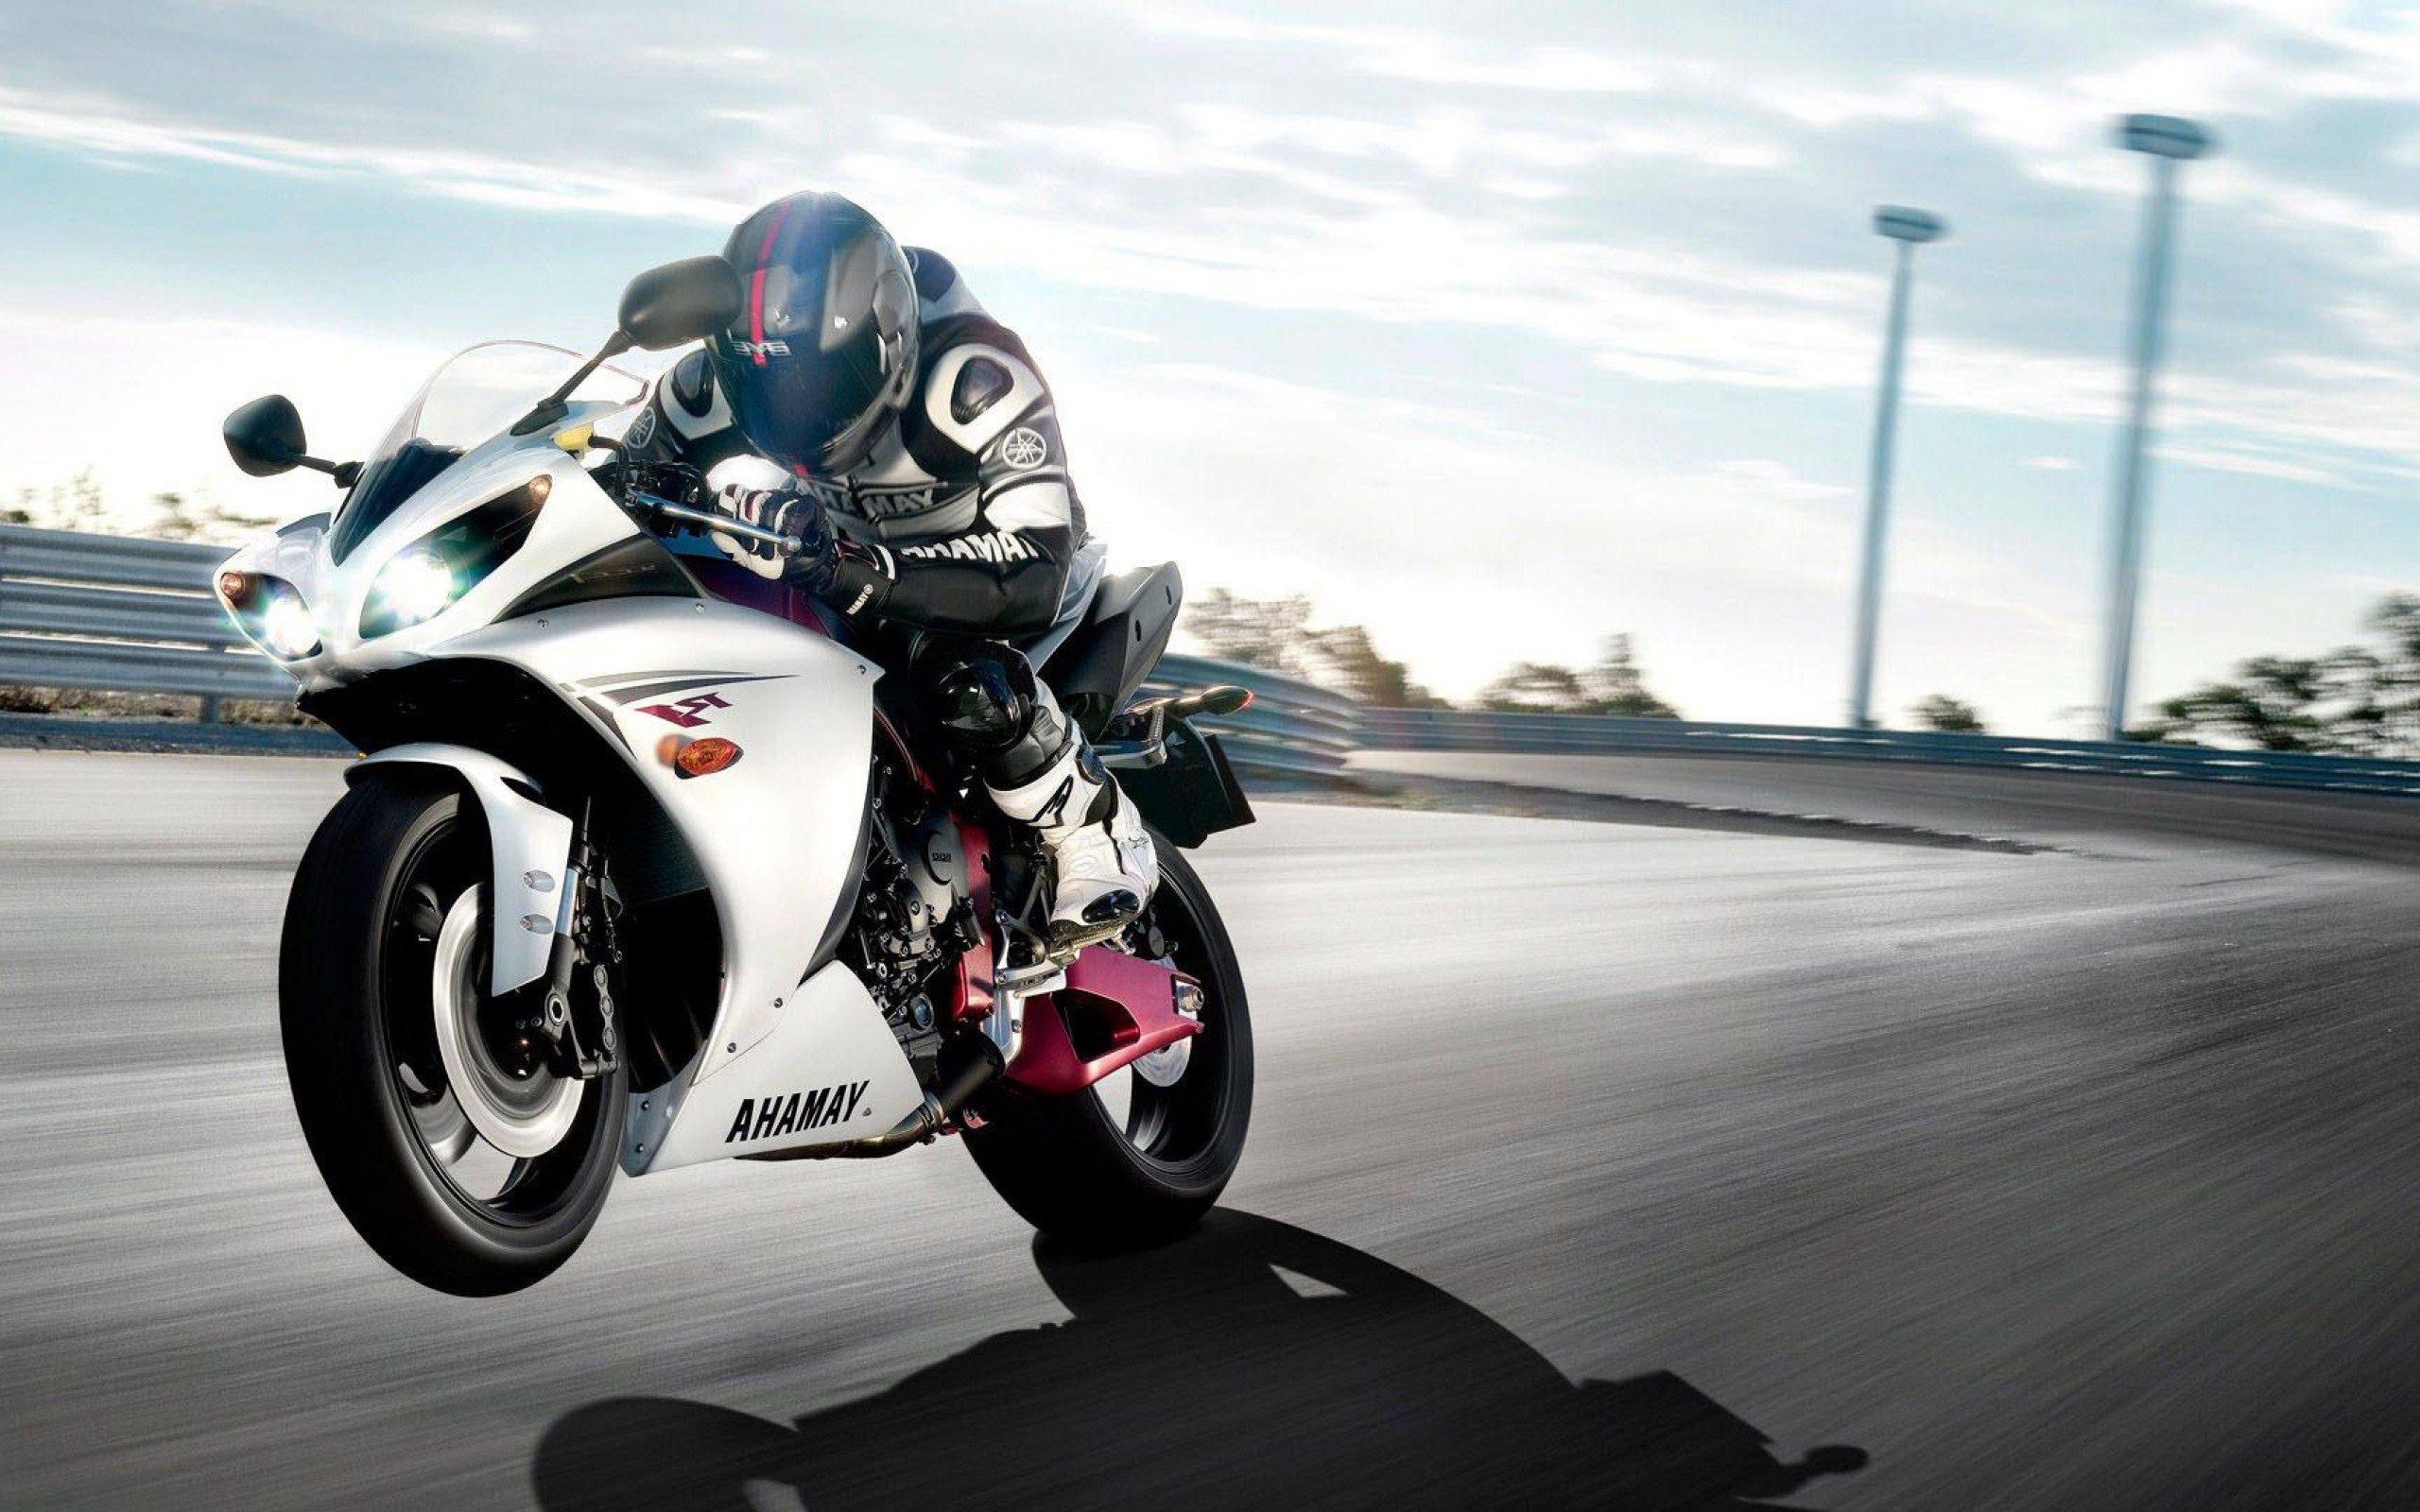 motorcycle-wallpapers-hd-for-desktop | wallpaper.wiki